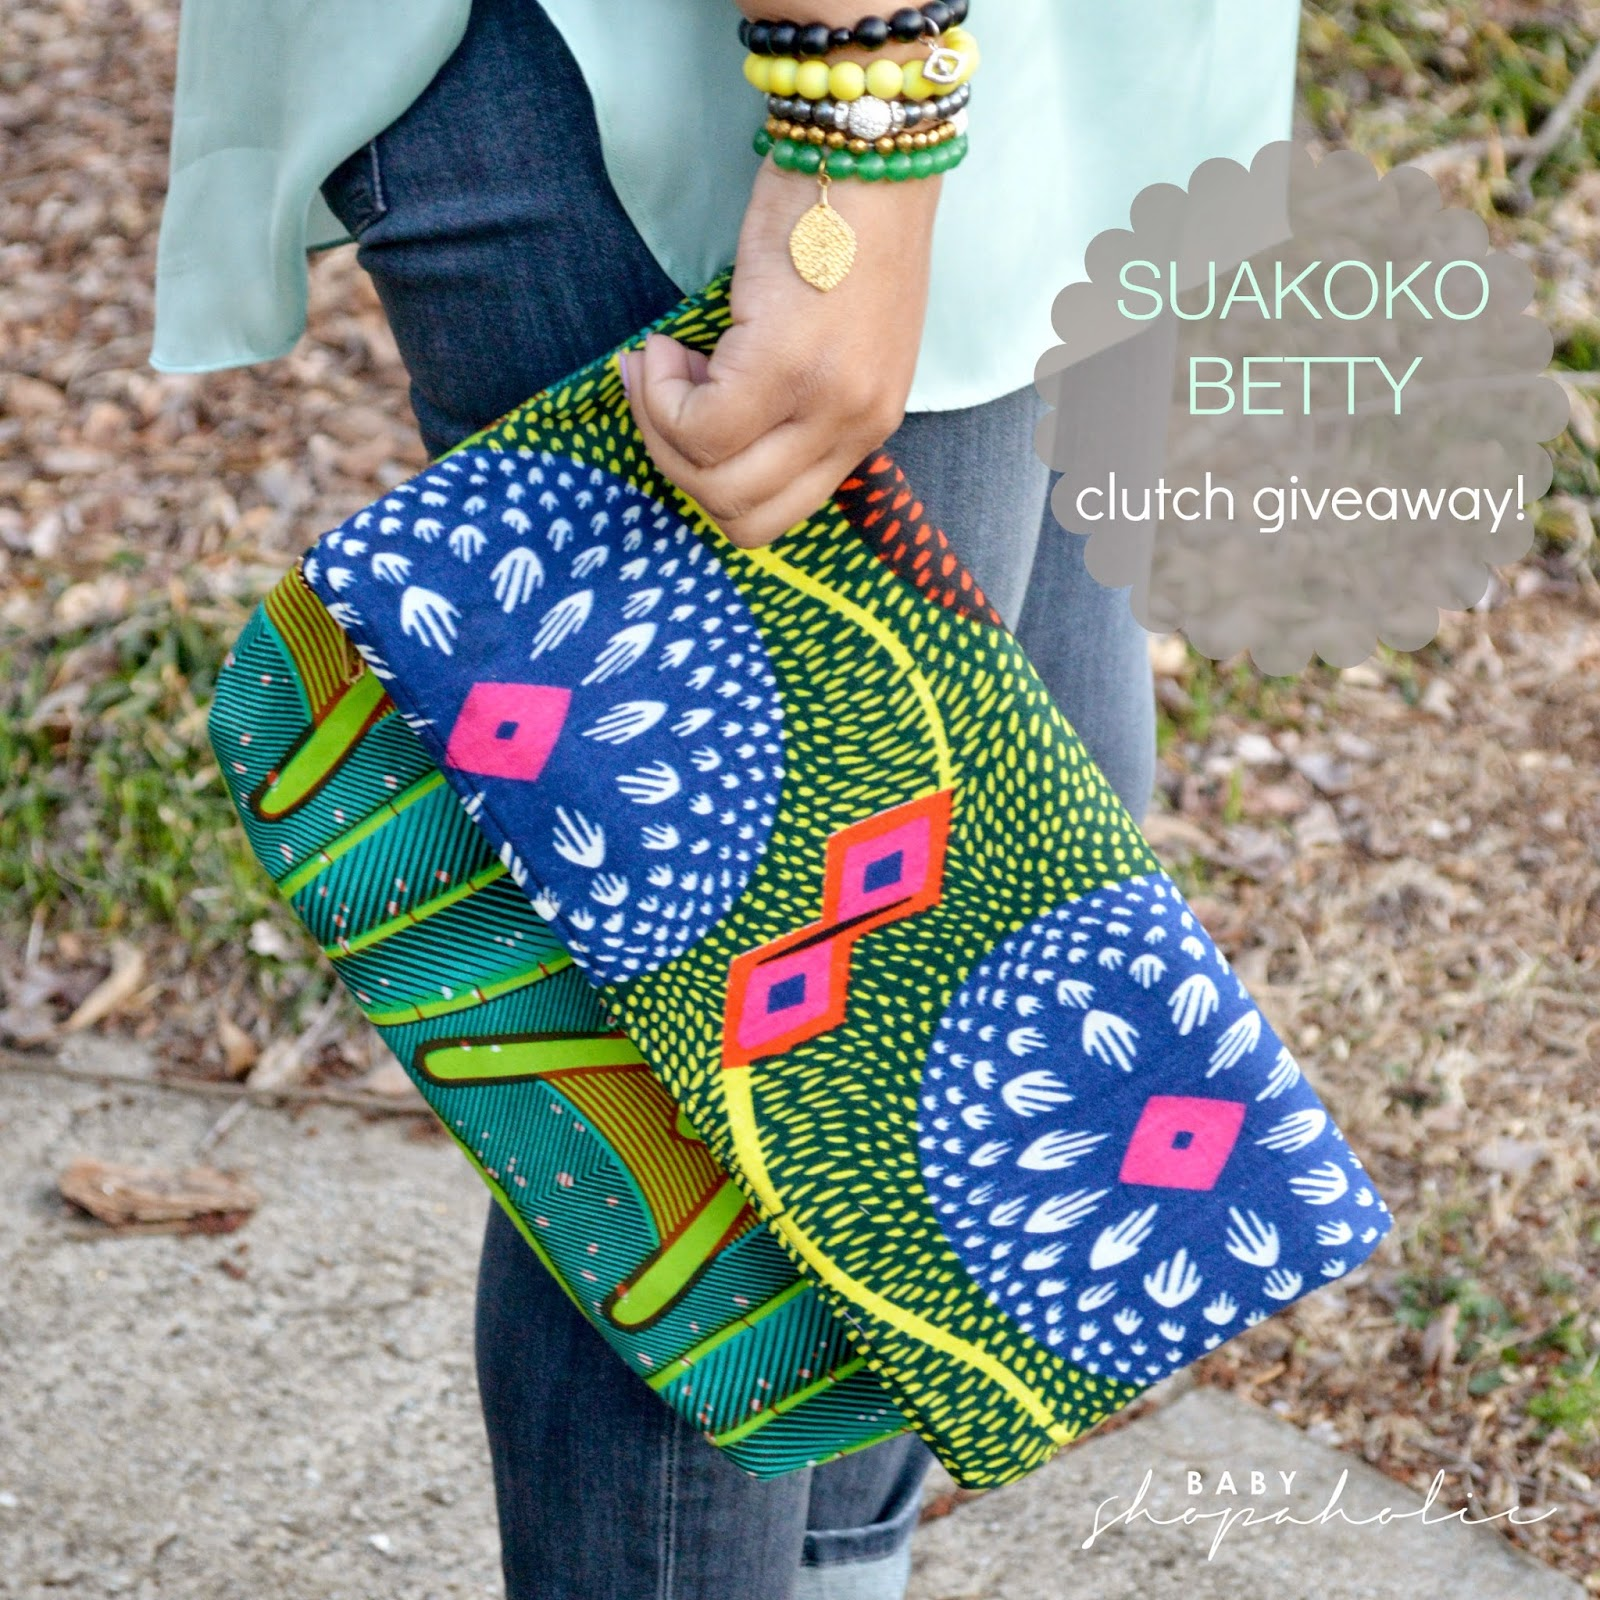 Suakoko Betty Available at Belk Giveaway Baby Shopaholic